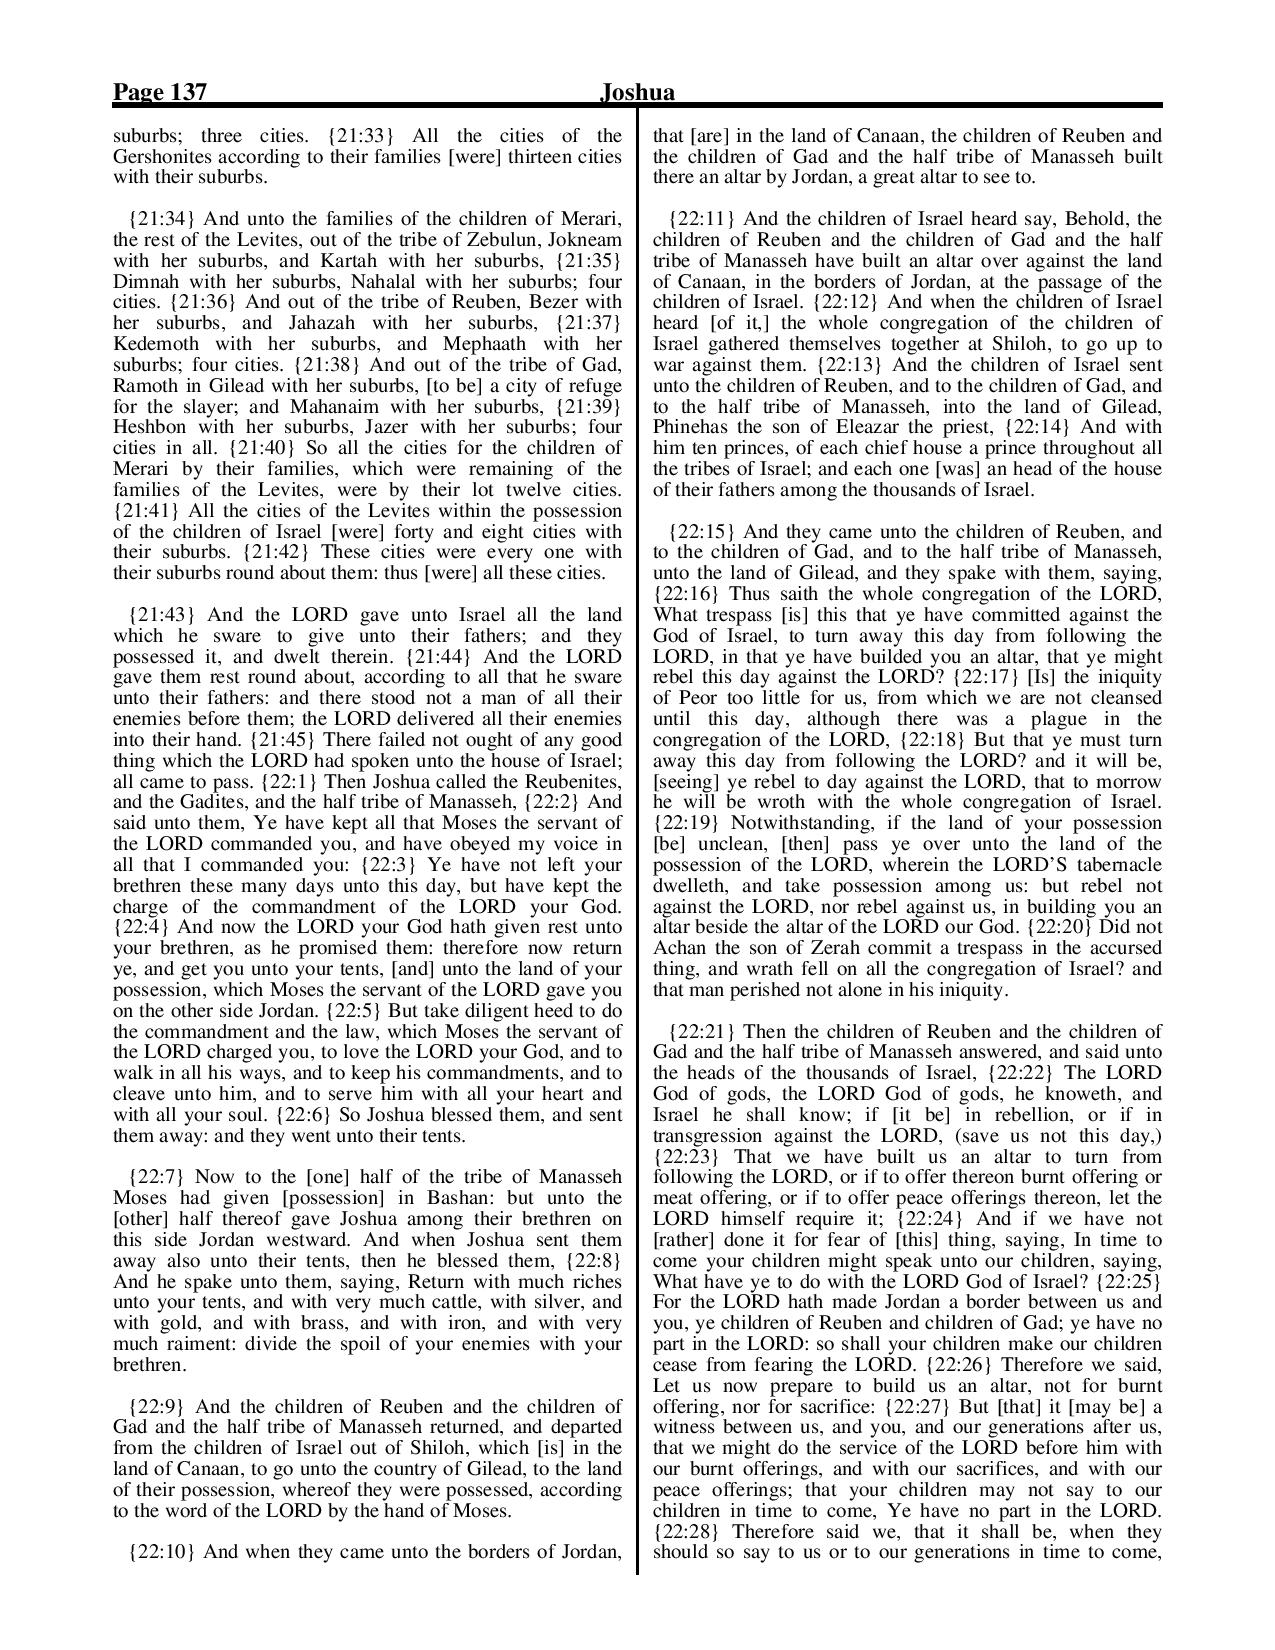 King-James-Bible-KJV-Bible-PDF-page-158